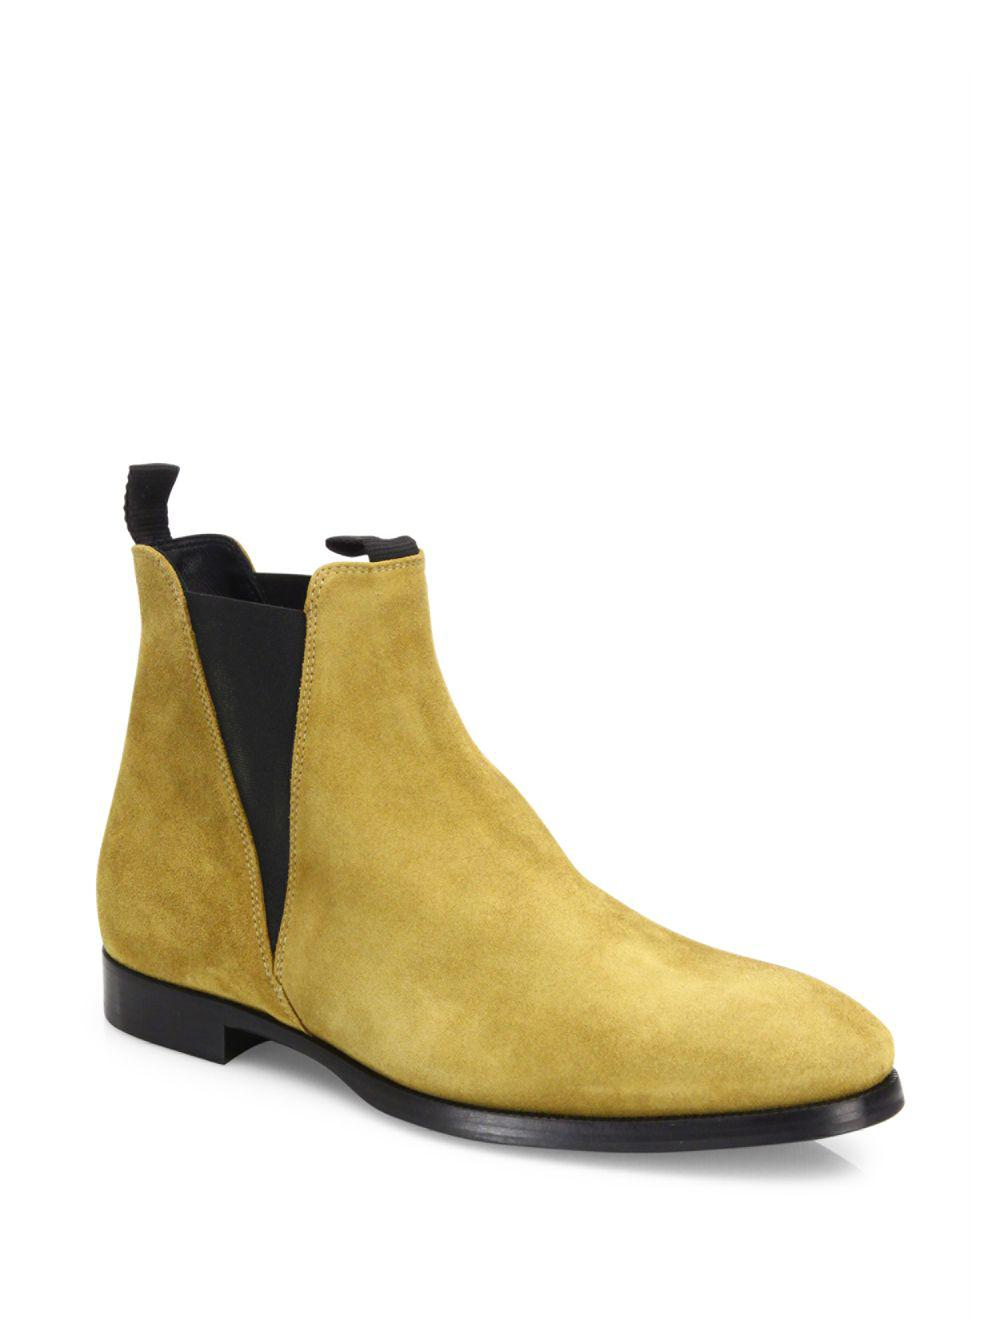 865a43137391 Lyst - Acne Studios Zack Slip-on Ankle Boots in Natural